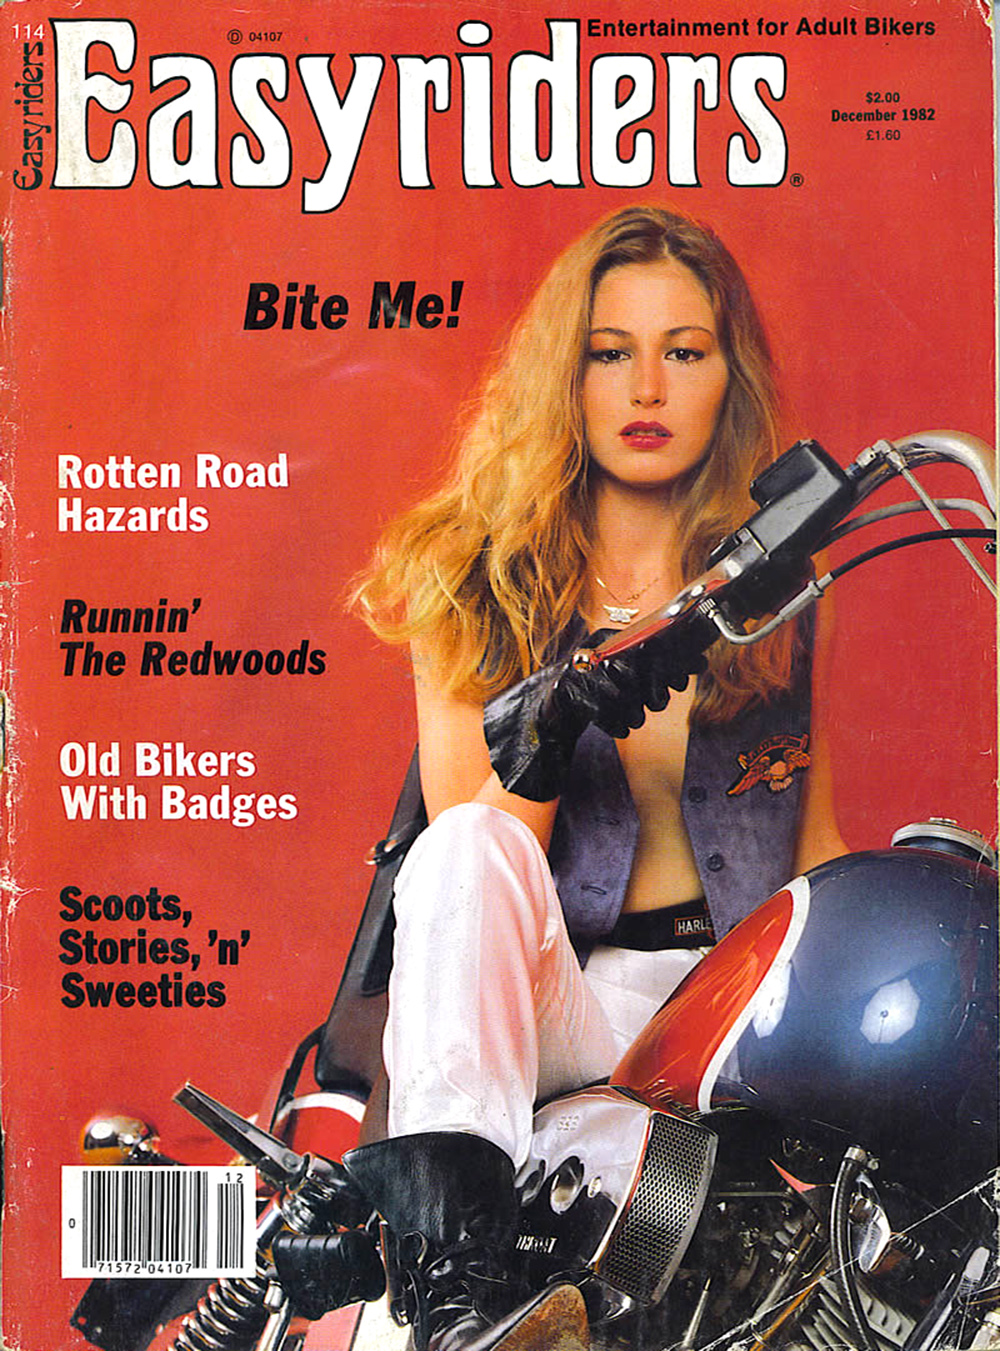 023_easyriders-magazine-december1982